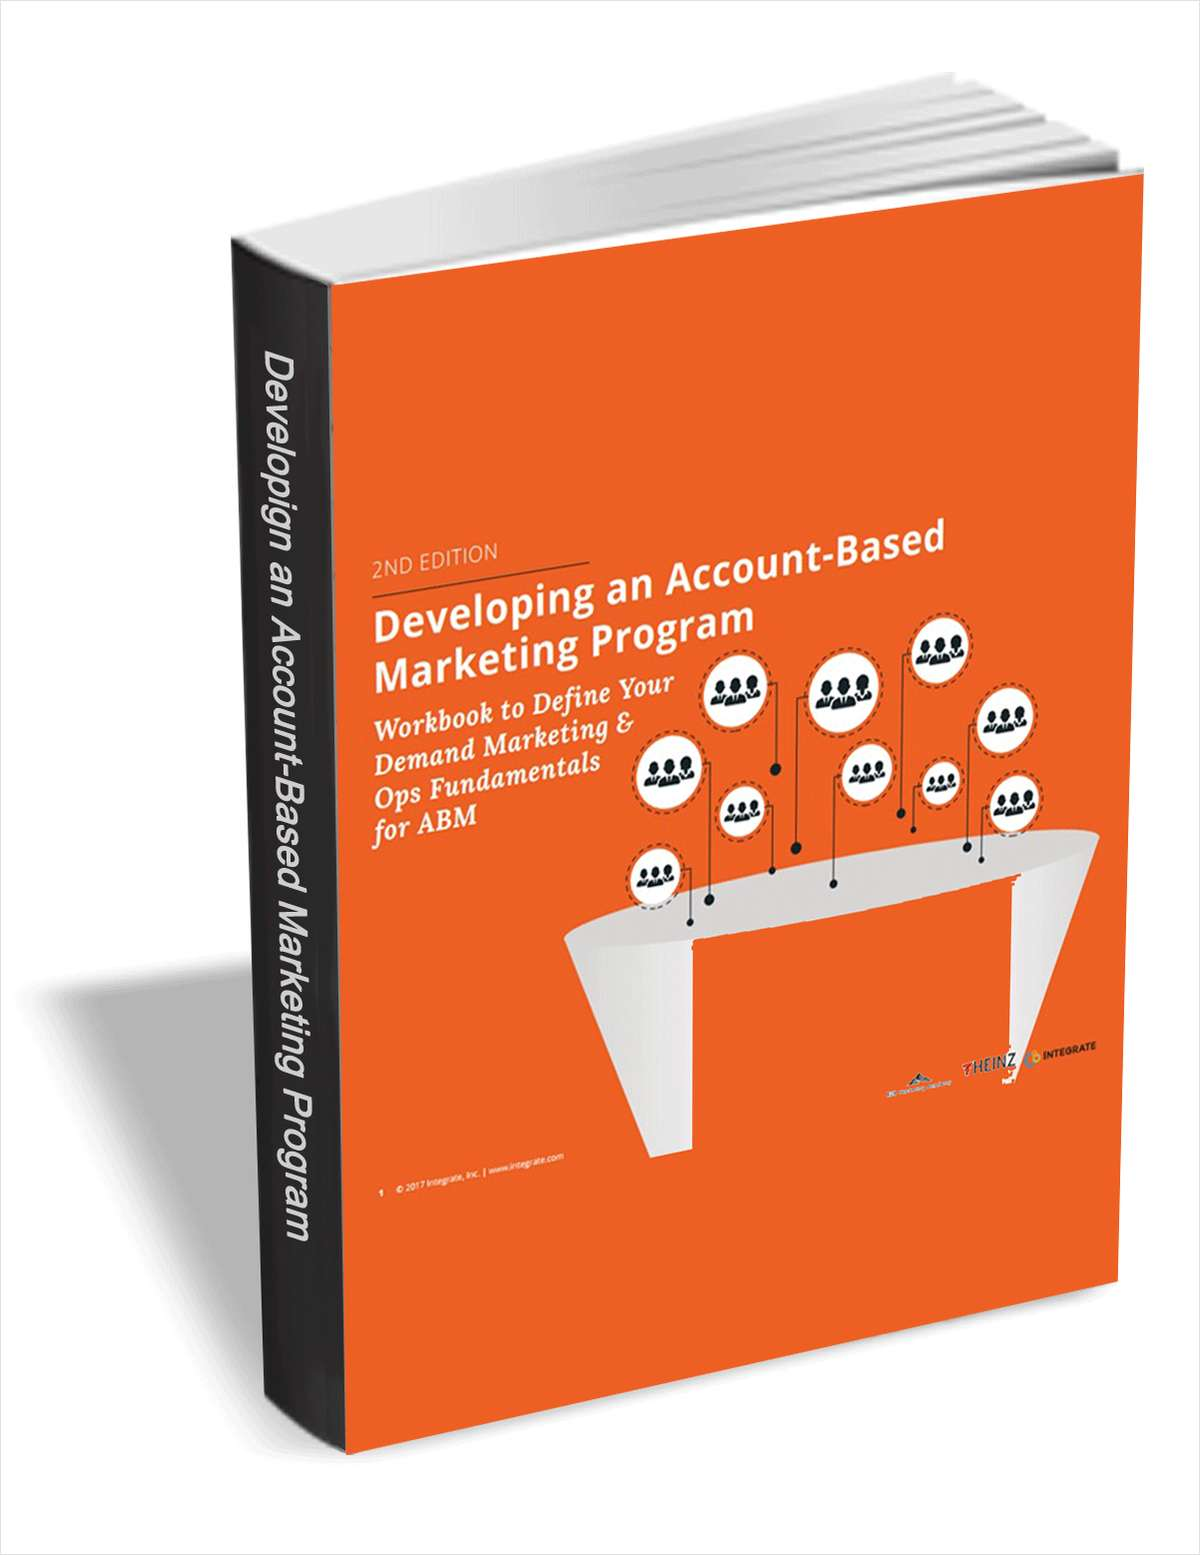 Developing an Account-Based Marketing Program, 2nd Edition